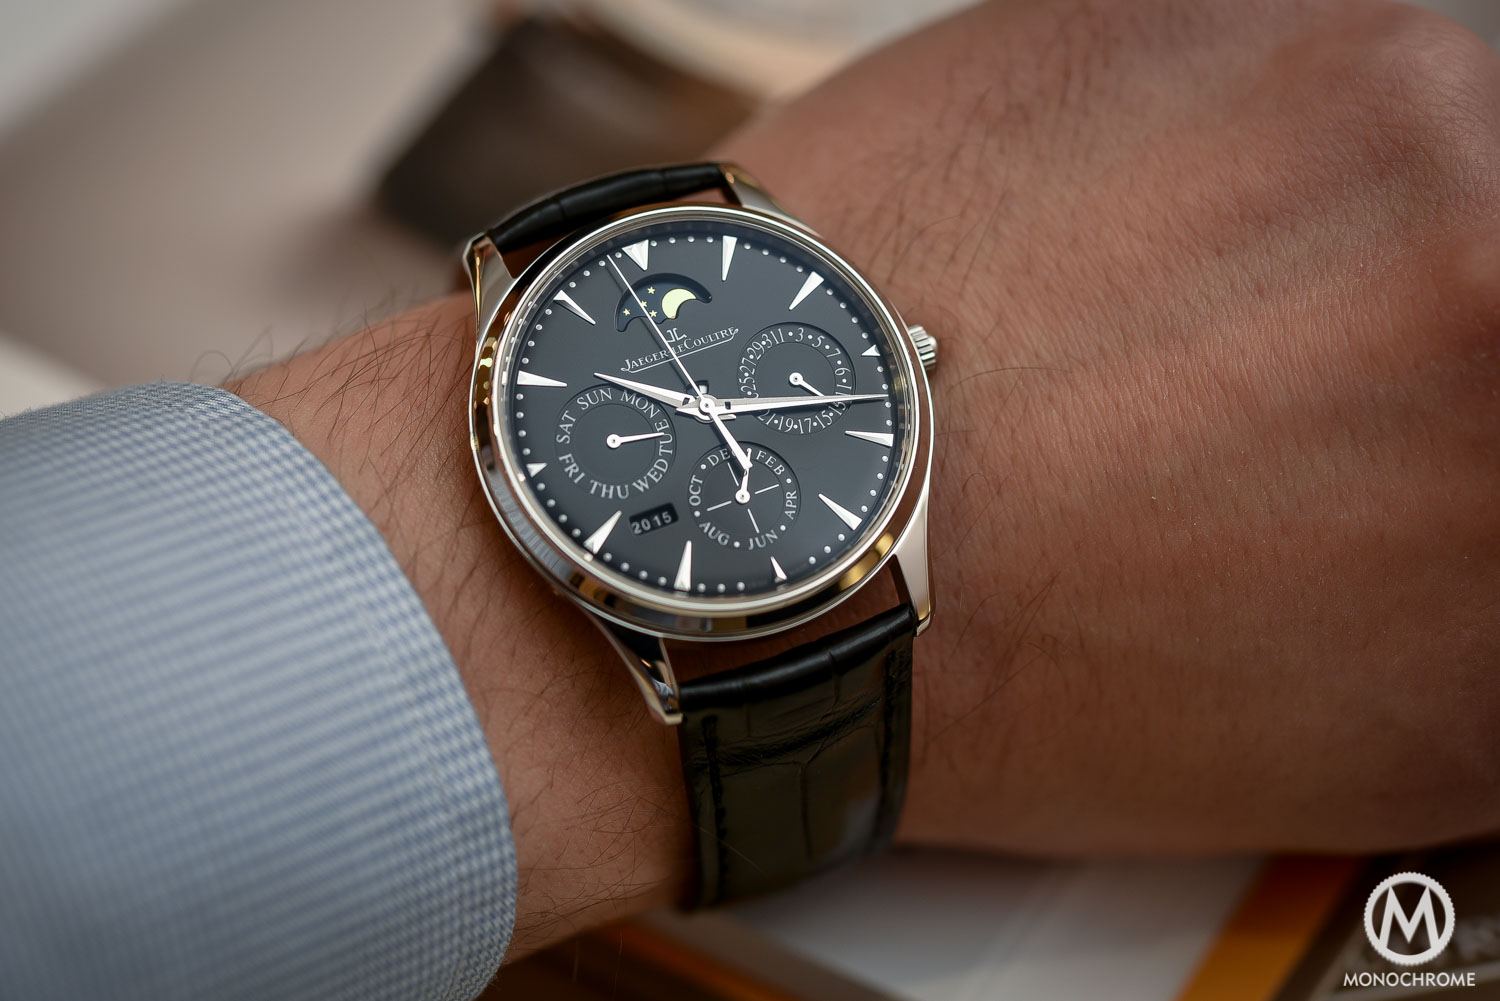 Sihh 2016 Hands On With The Jaeger Lecoultre Master